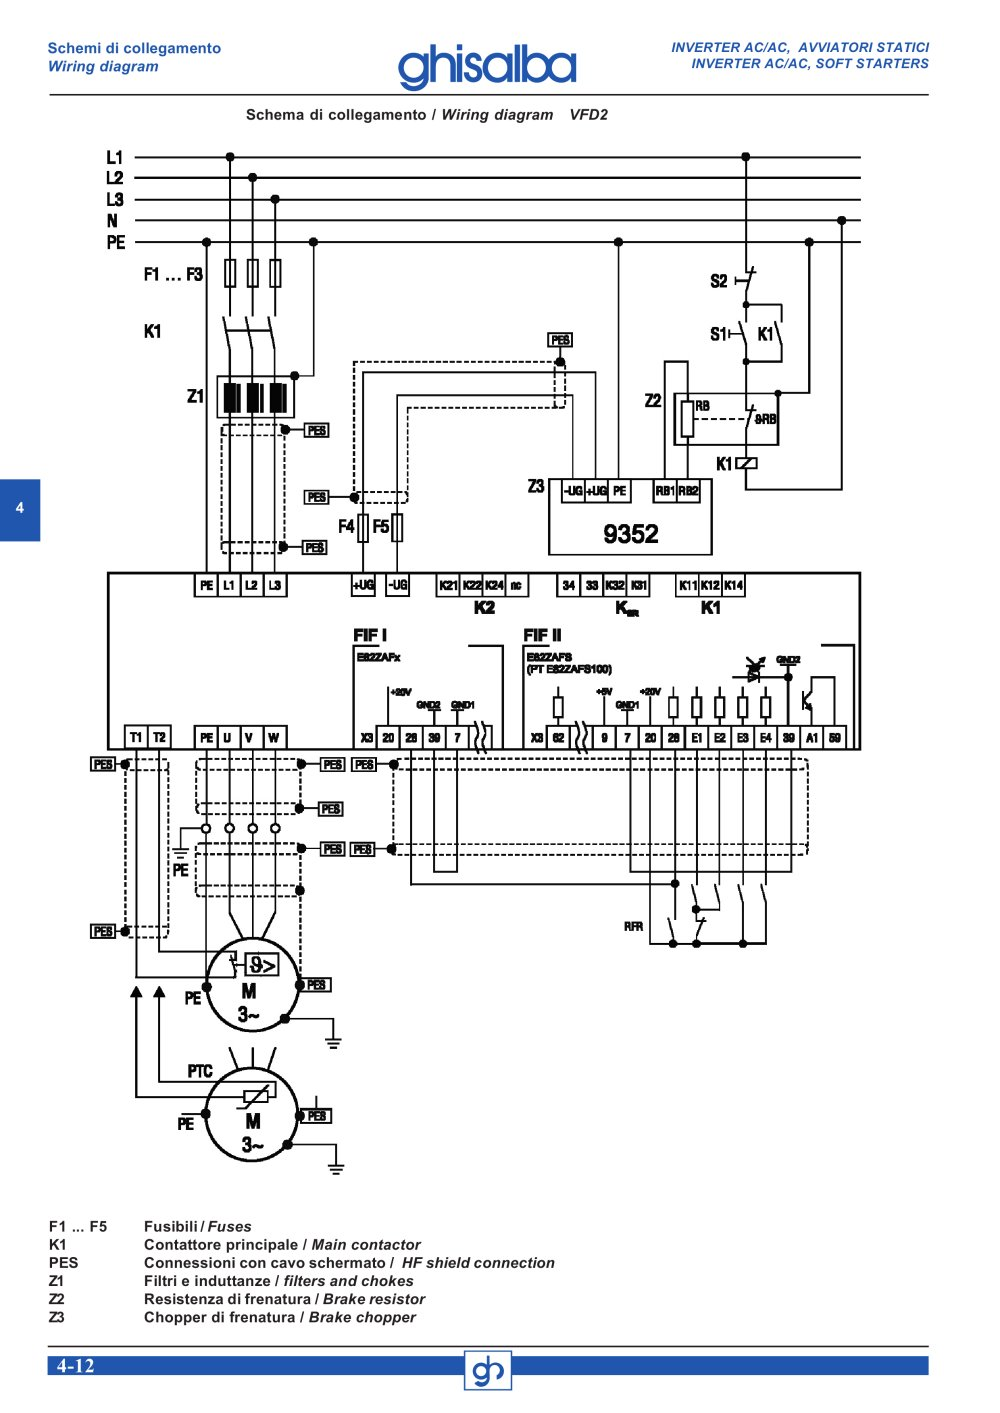 inverter soft starters 135447_10b?resized665%2C940 abb soft starter circuit diagram efcaviation com abb soft starter psr wiring diagram at mr168.co